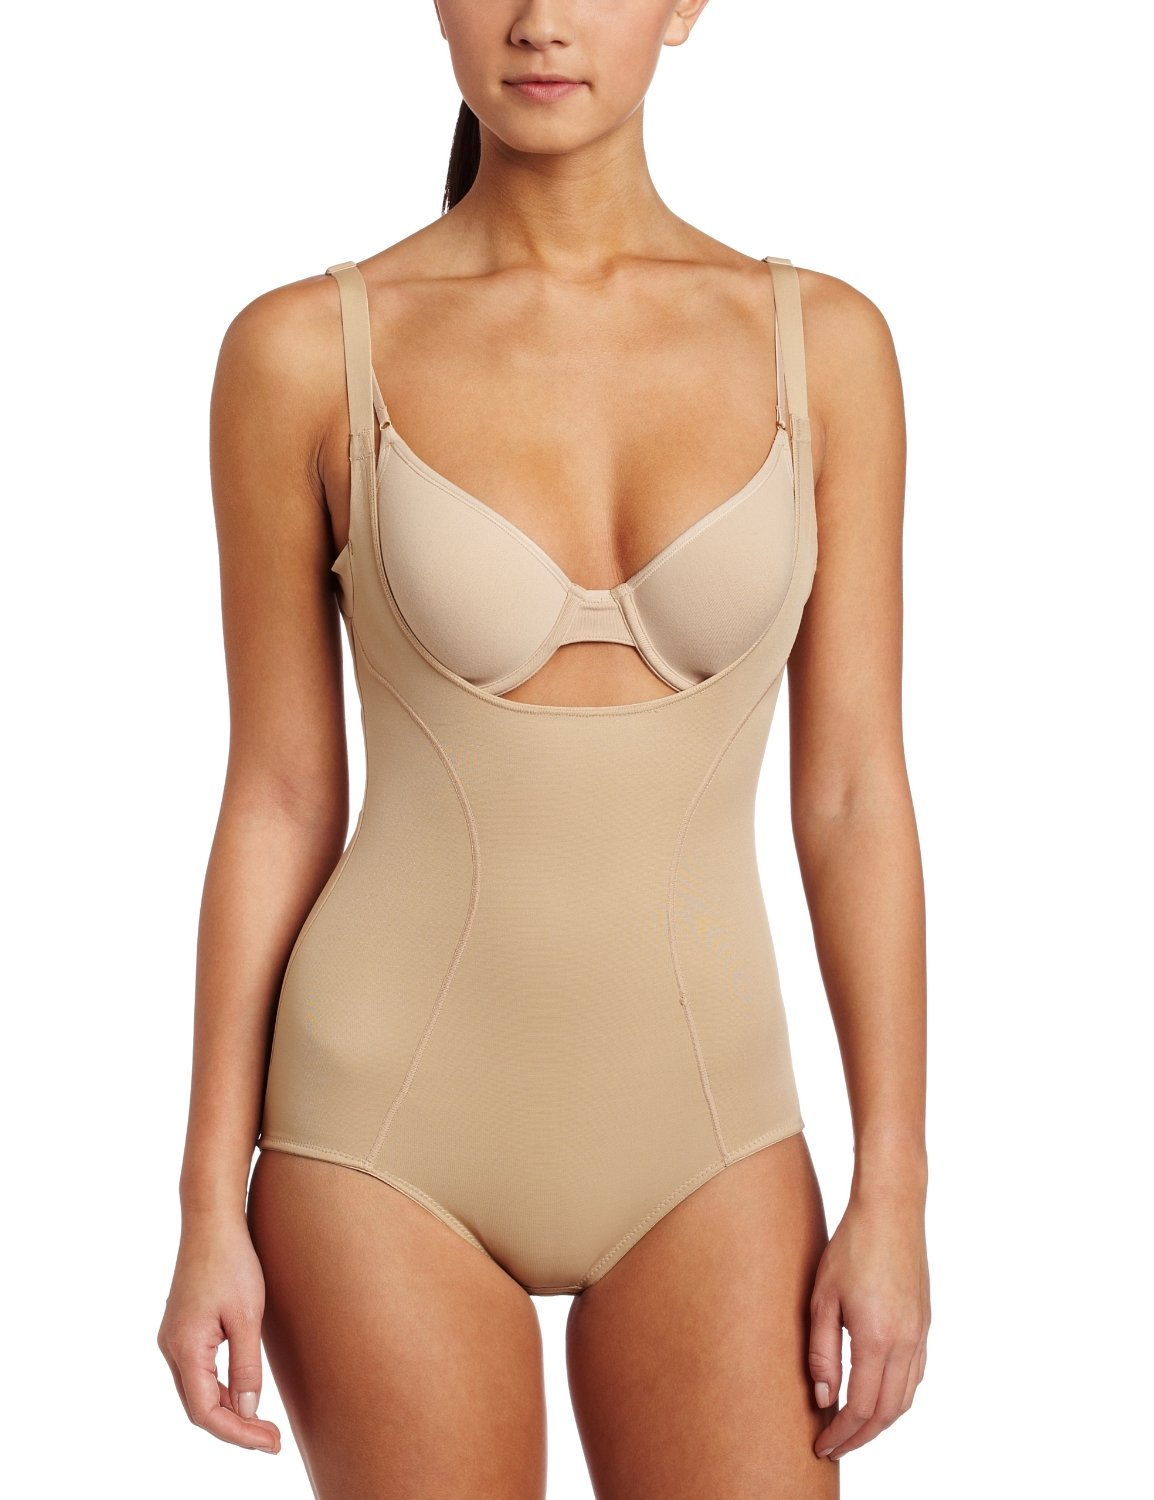 ff941a2f64a67 Flexees by Maidenform Women s Ultimate Slimmer Wear Your Own Bra Torsette  Body Briefer  2656